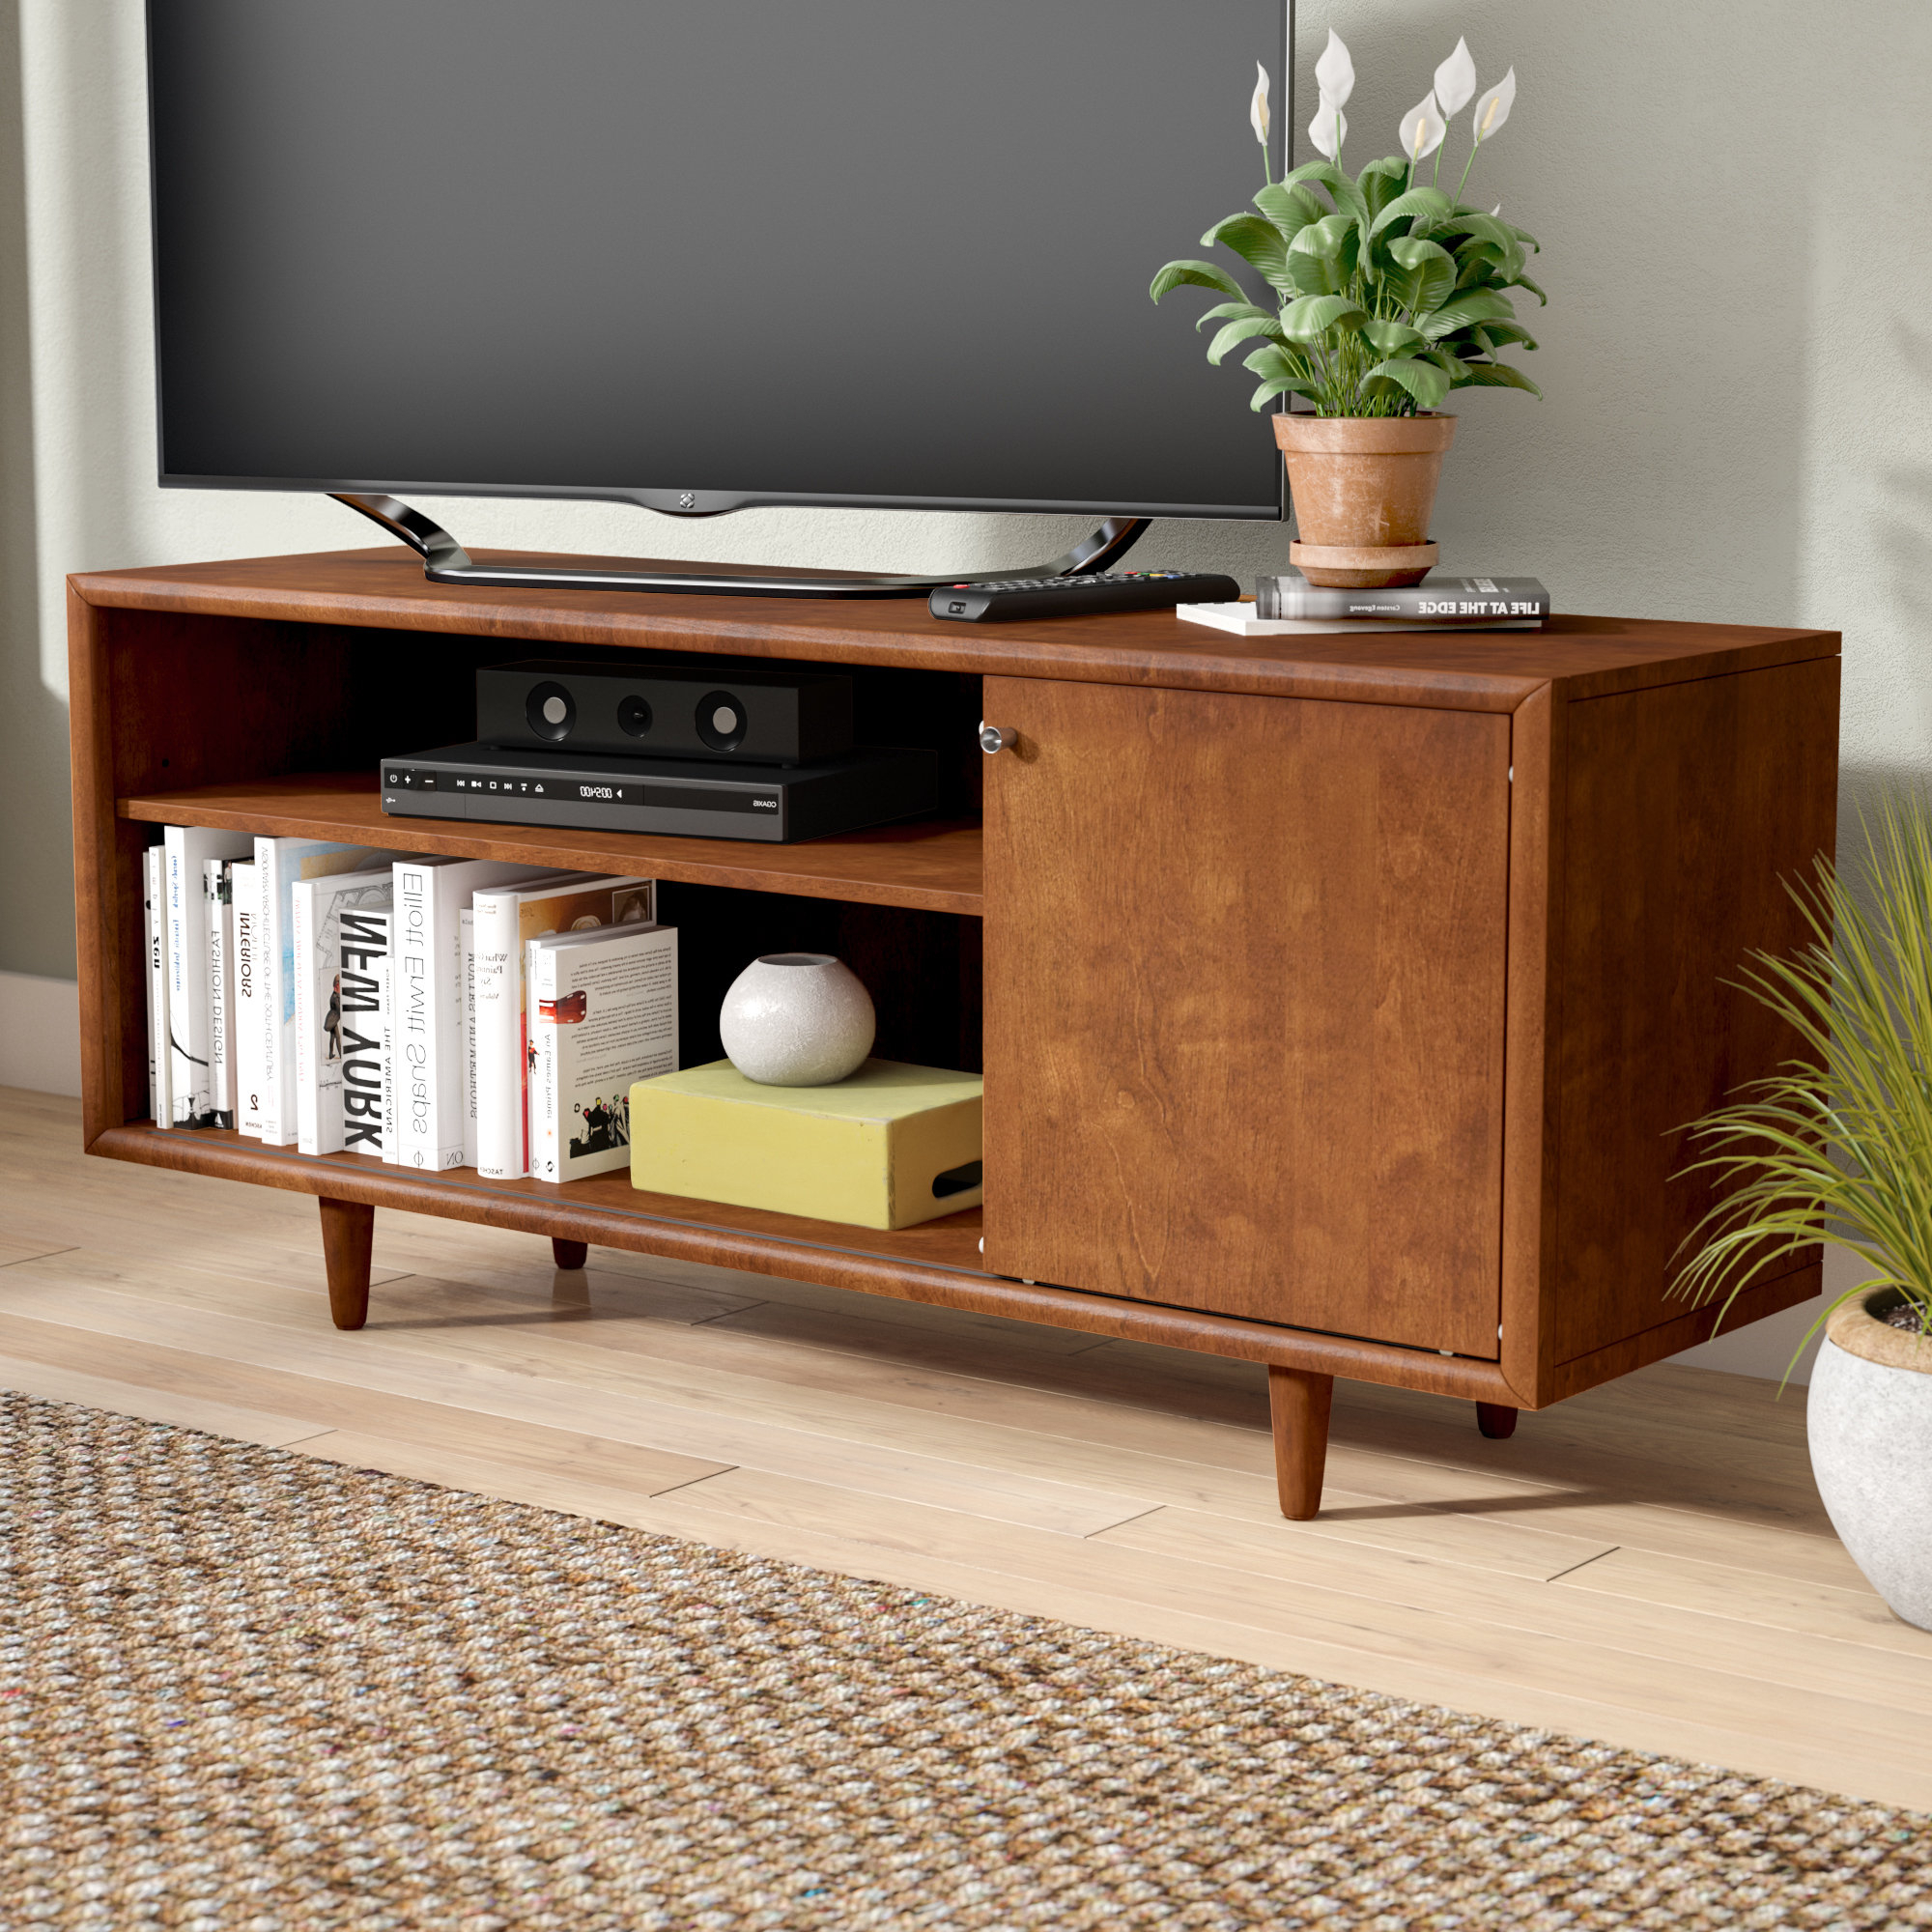 """Well Liked Langley Street Lauren Tv Stand For Tvs Up To 60"""" & Reviews (View 19 of 20)"""